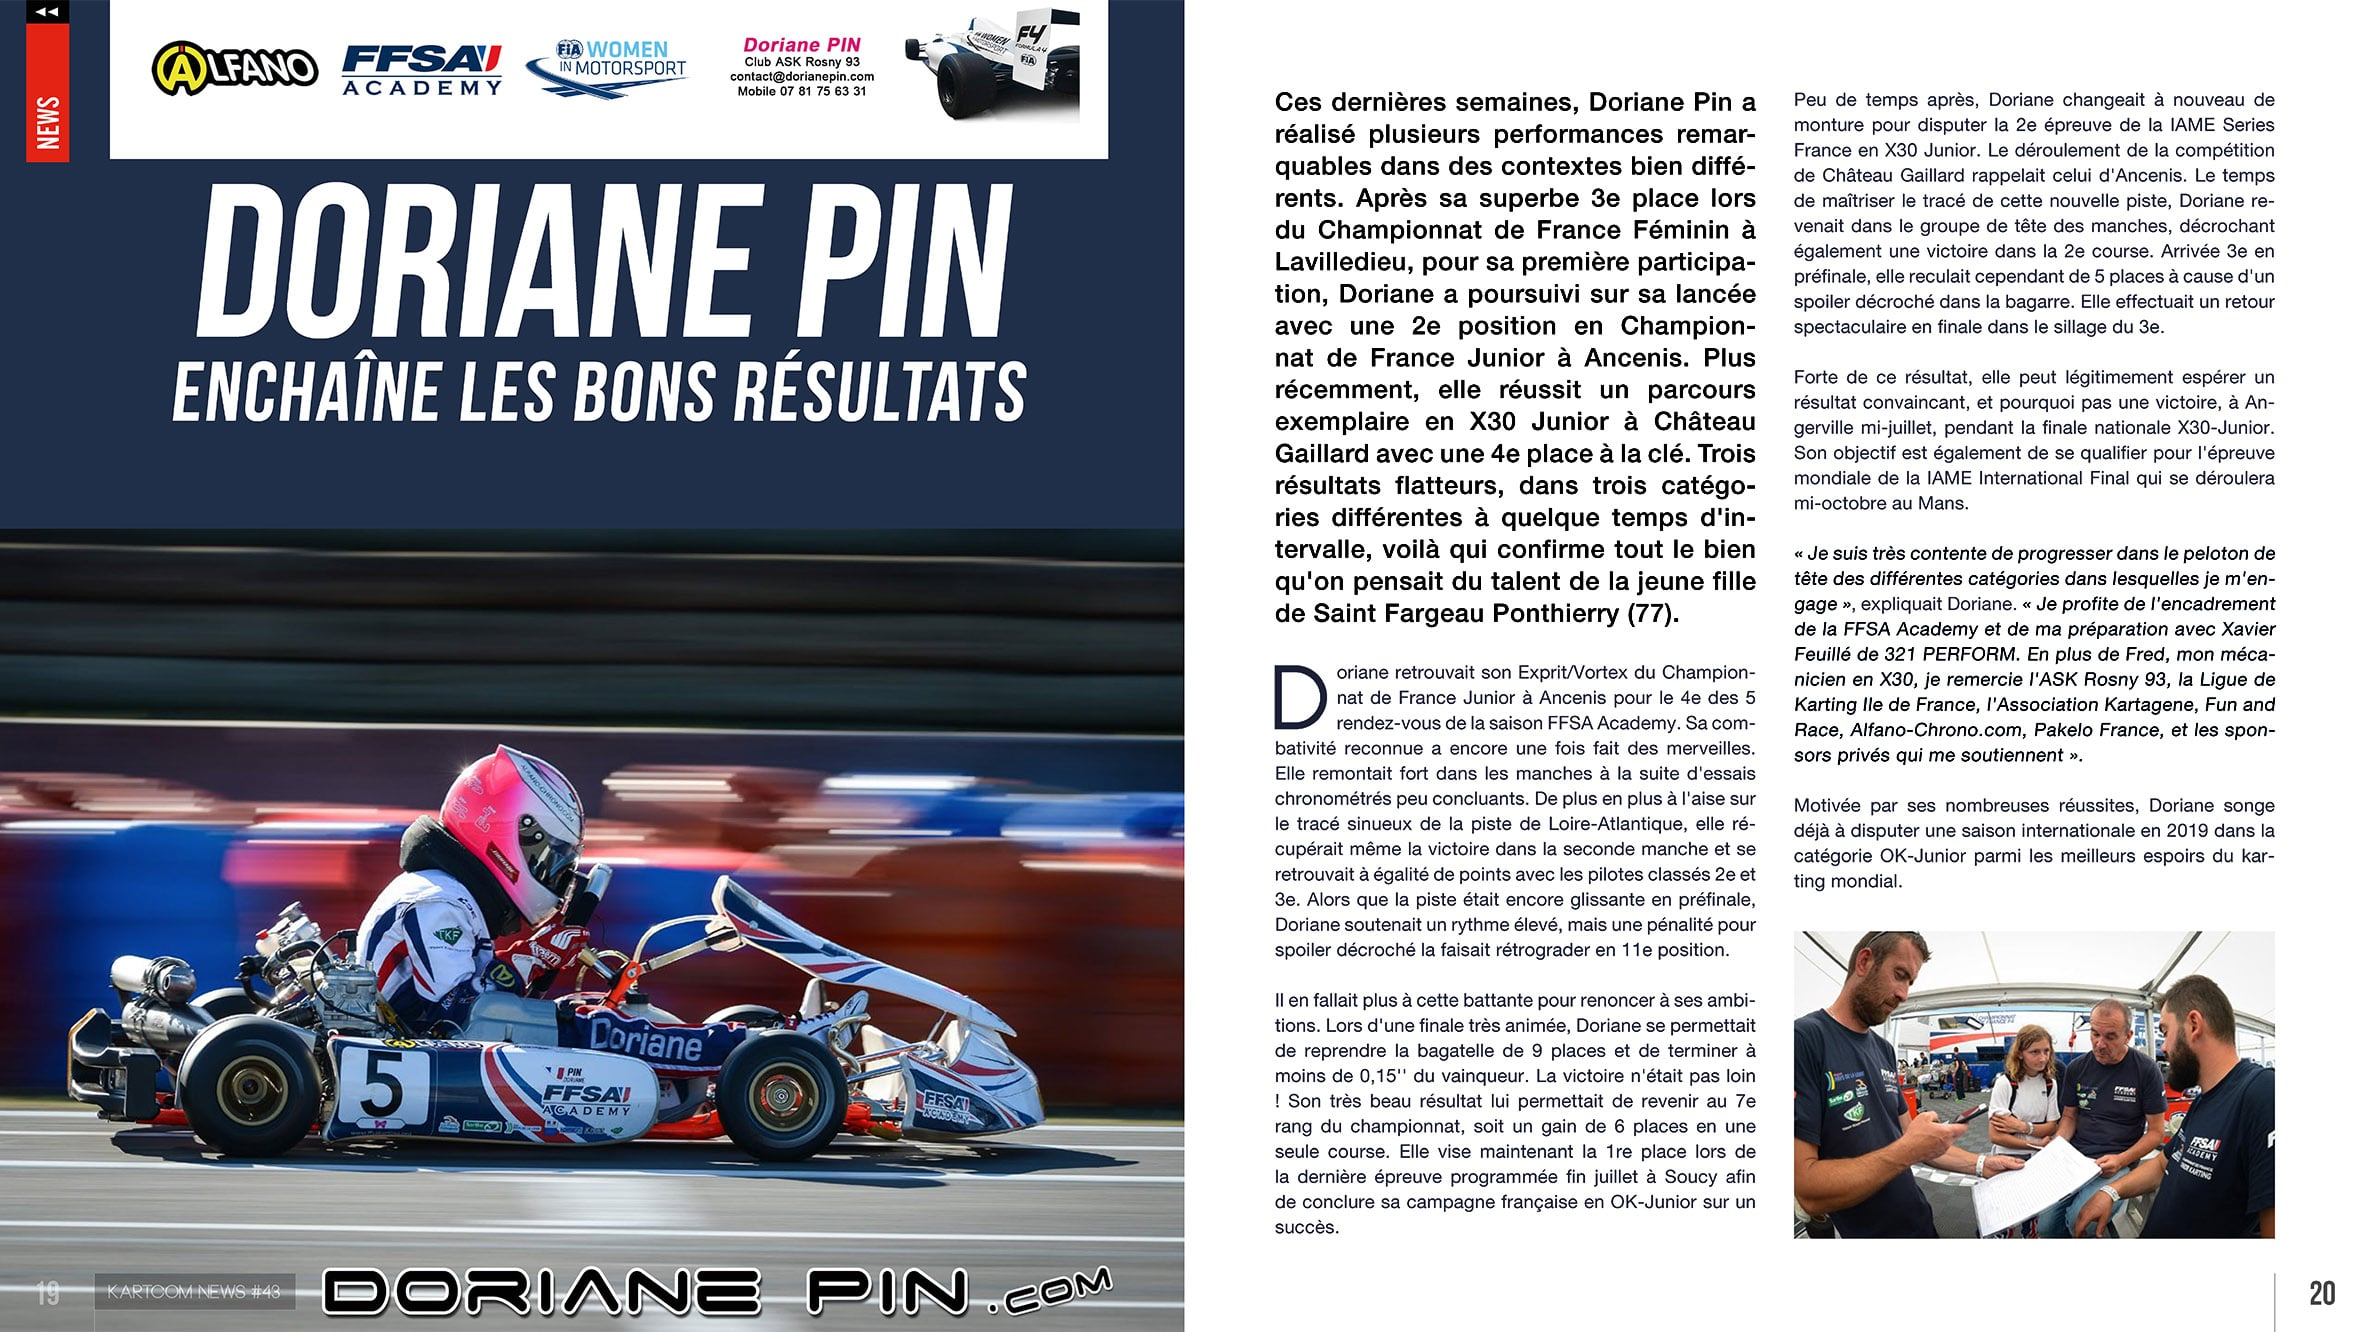 Doriane Pin récompensée par la Commission FIA Women in Motorsport lors du volant Winfield au Castellet , article fev 2019